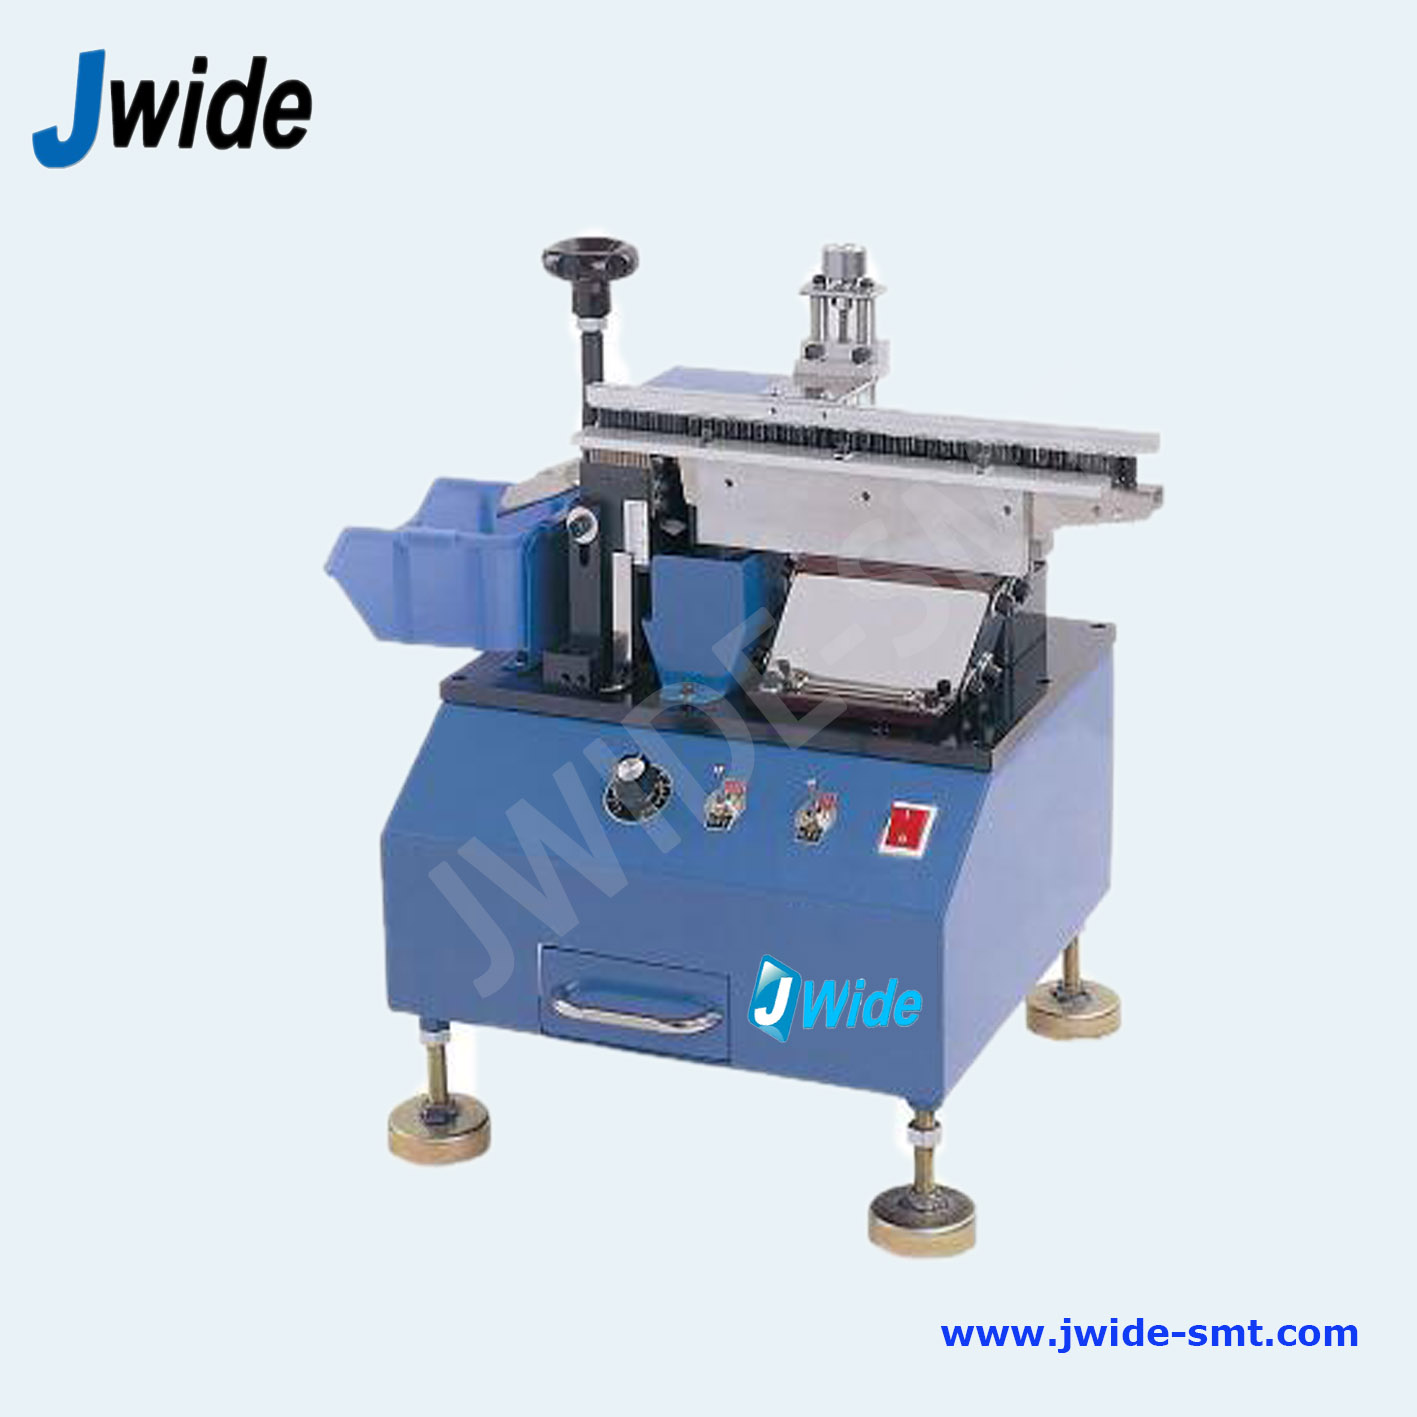 components lead cutting machine